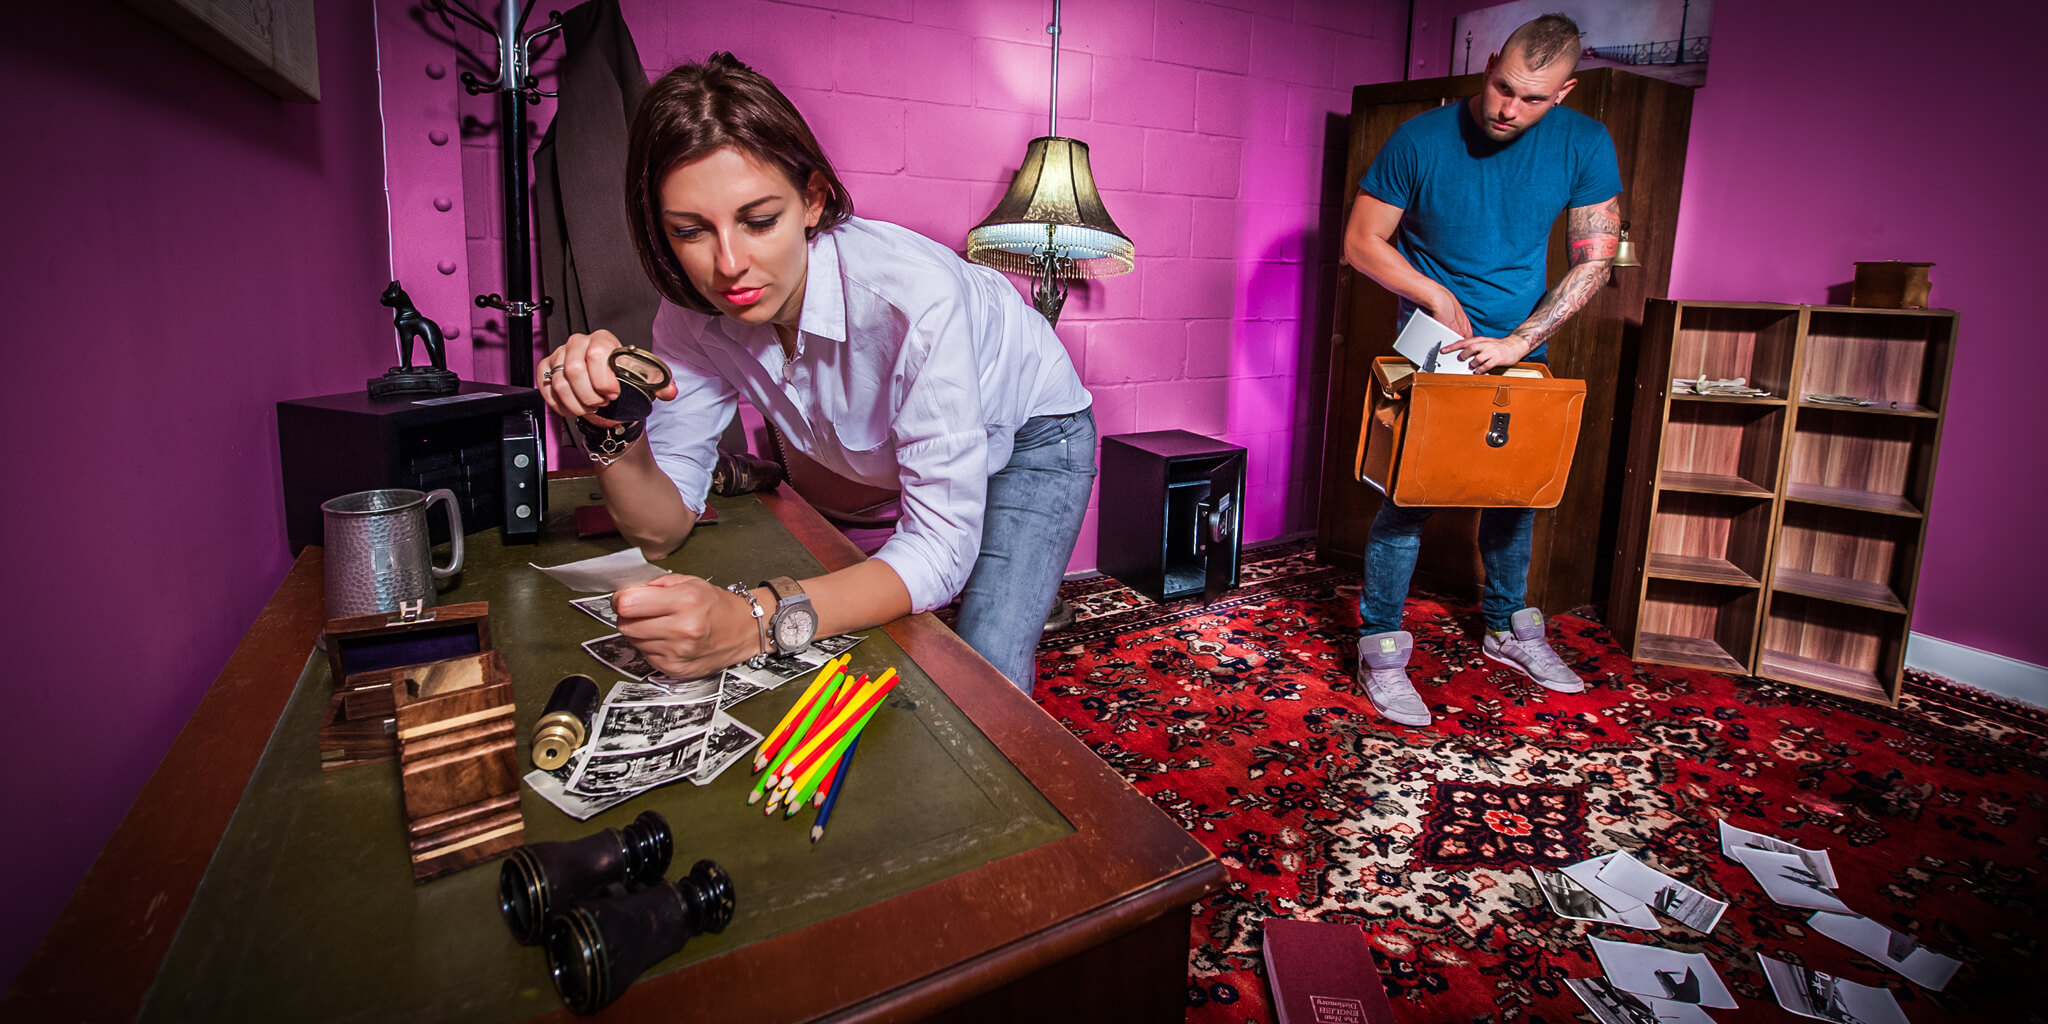 Whom Will You Choose To Play With In An Escape Room?